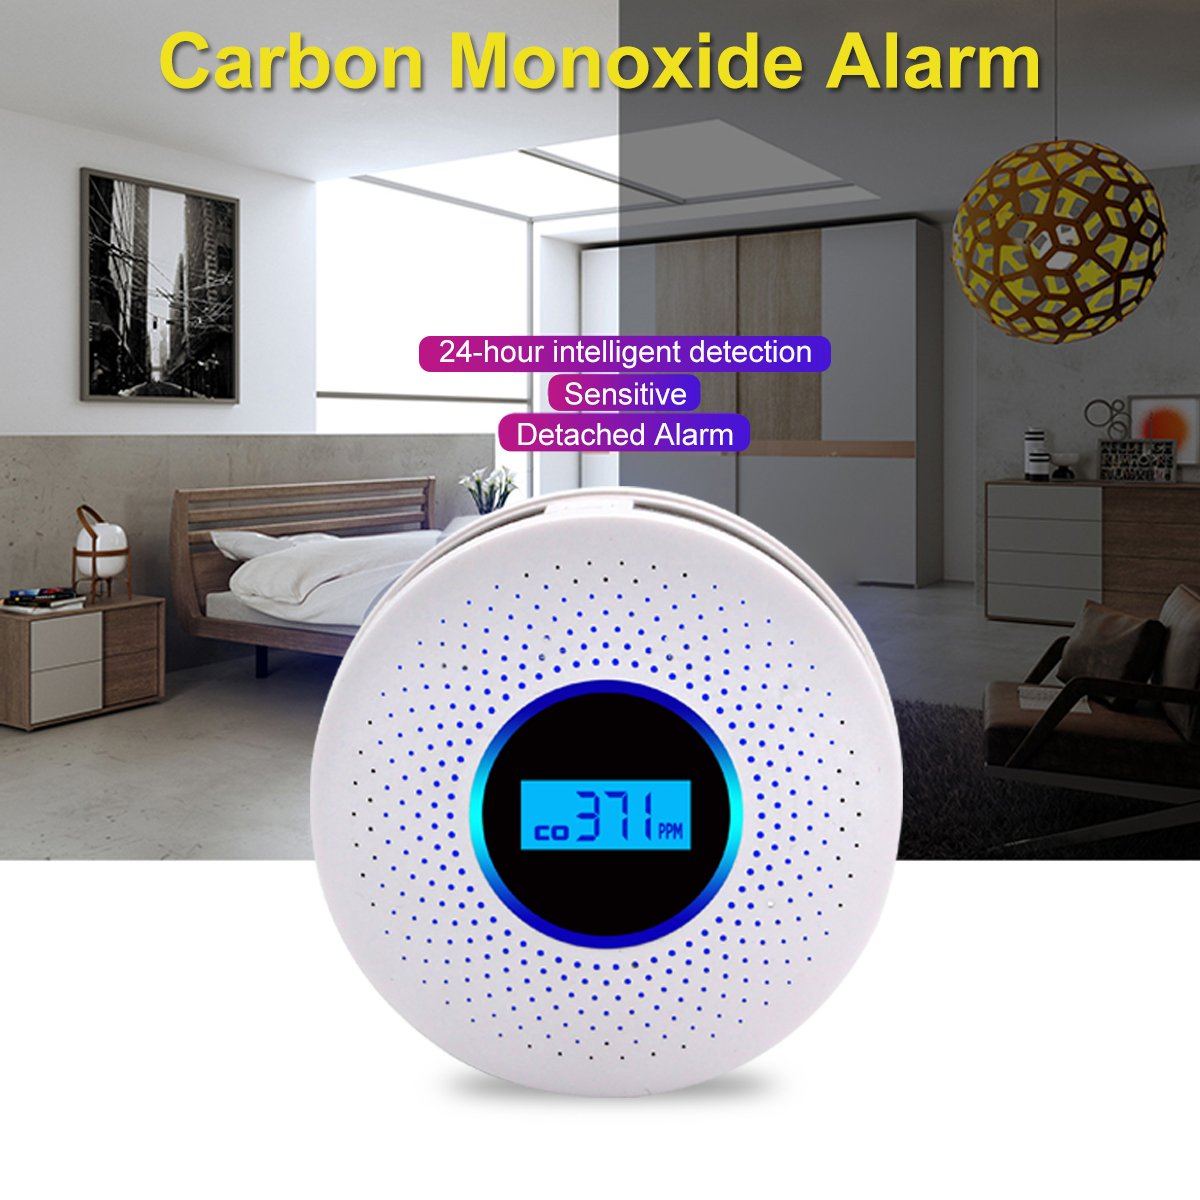 New 2 In 1 CO Smoke Detector LED Display Alarm Carbon Monoxide Leakage Sensor Smart Human Voice LCD Display High Reliability